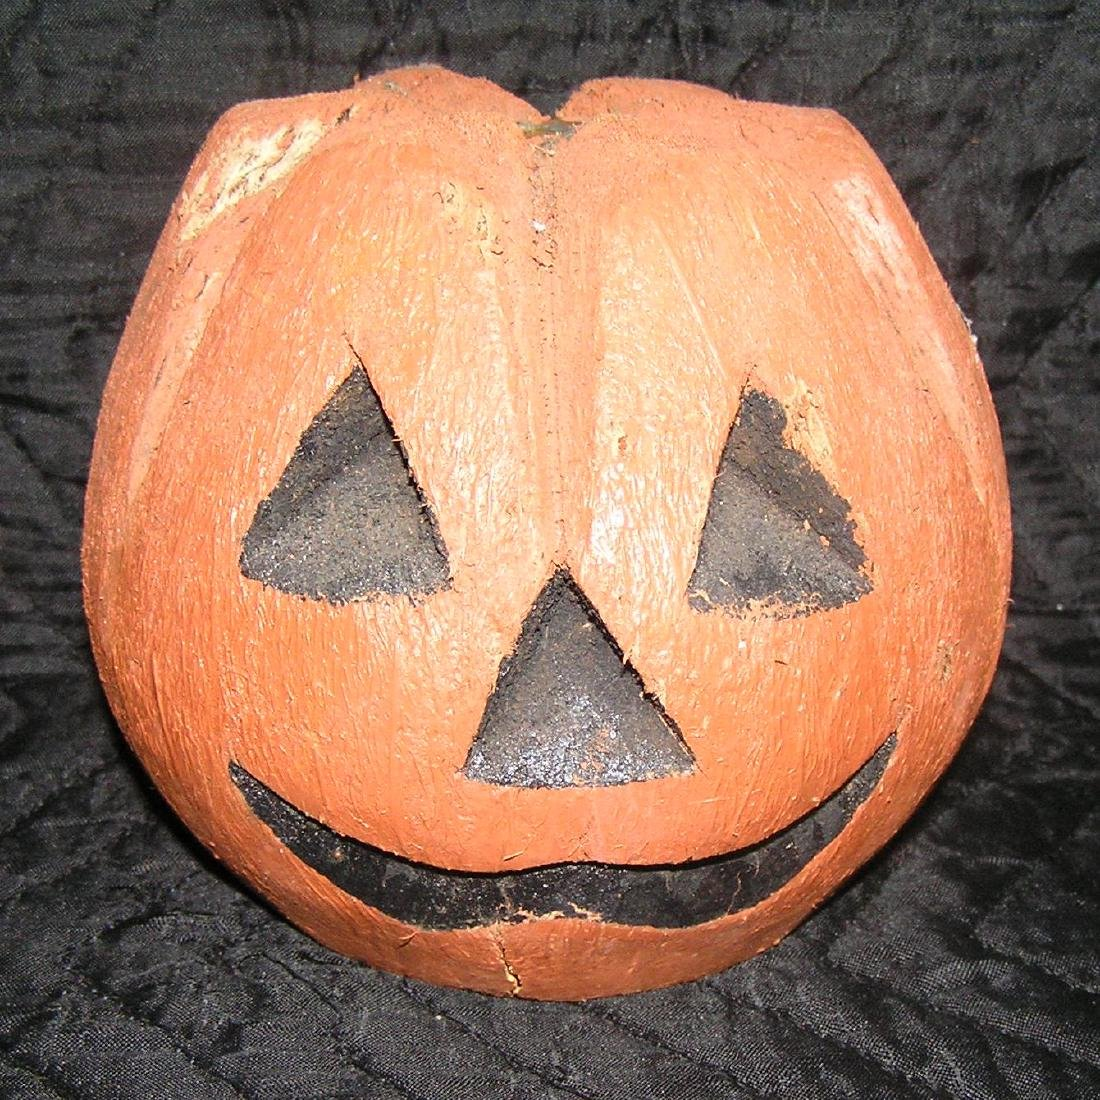 Vintage Jack O Lantern carved from an old coconut